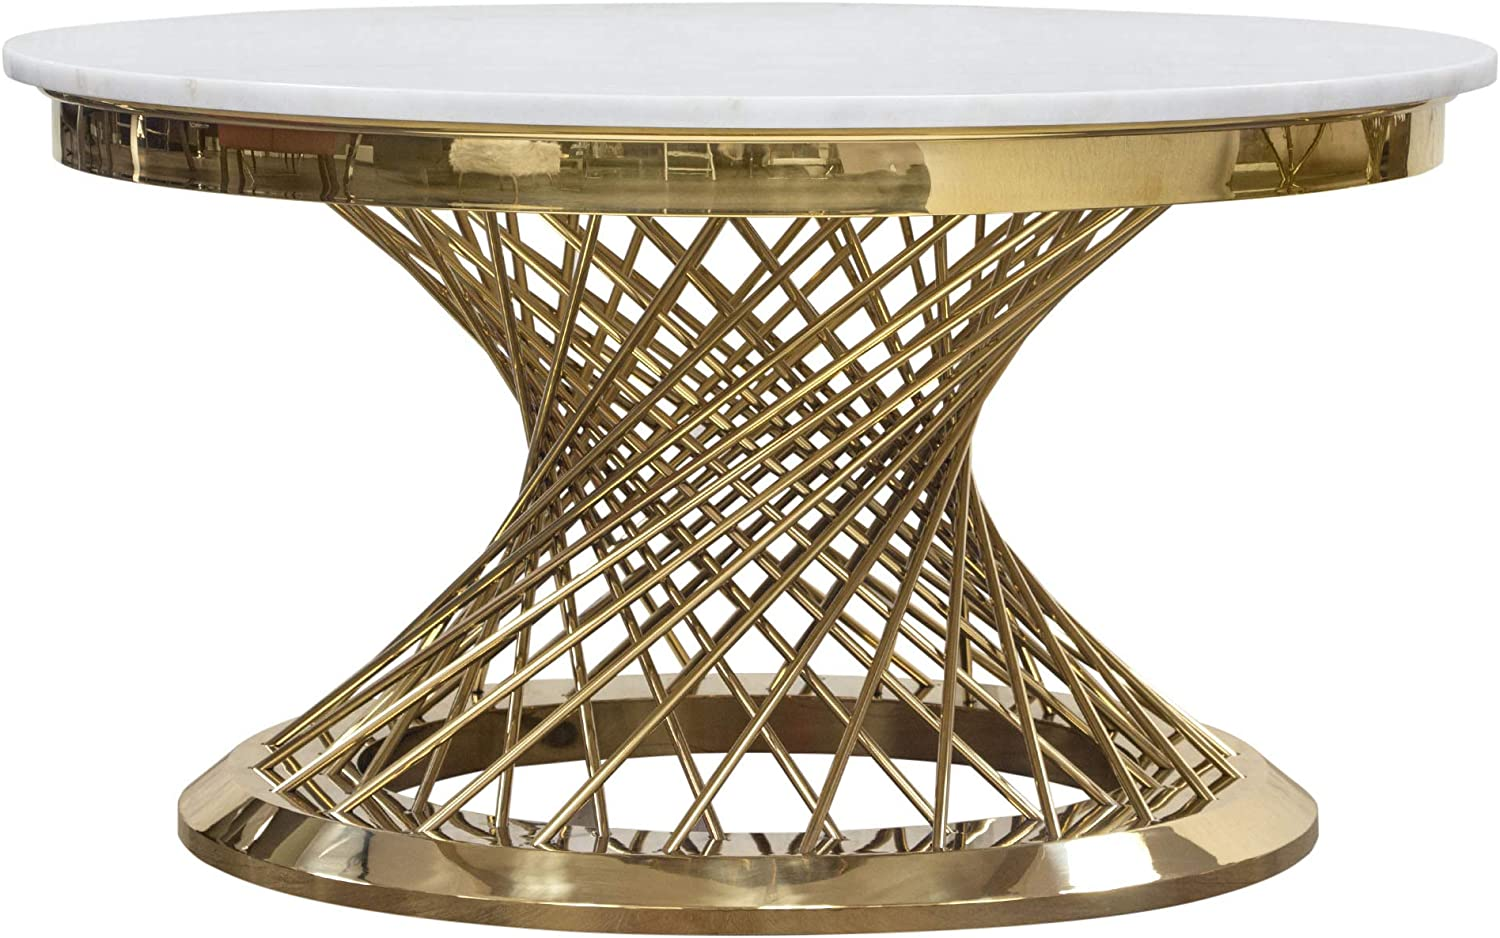 Diamond Sofa Round Charlotte Mall Cocktail Finally popular brand Gold Table in